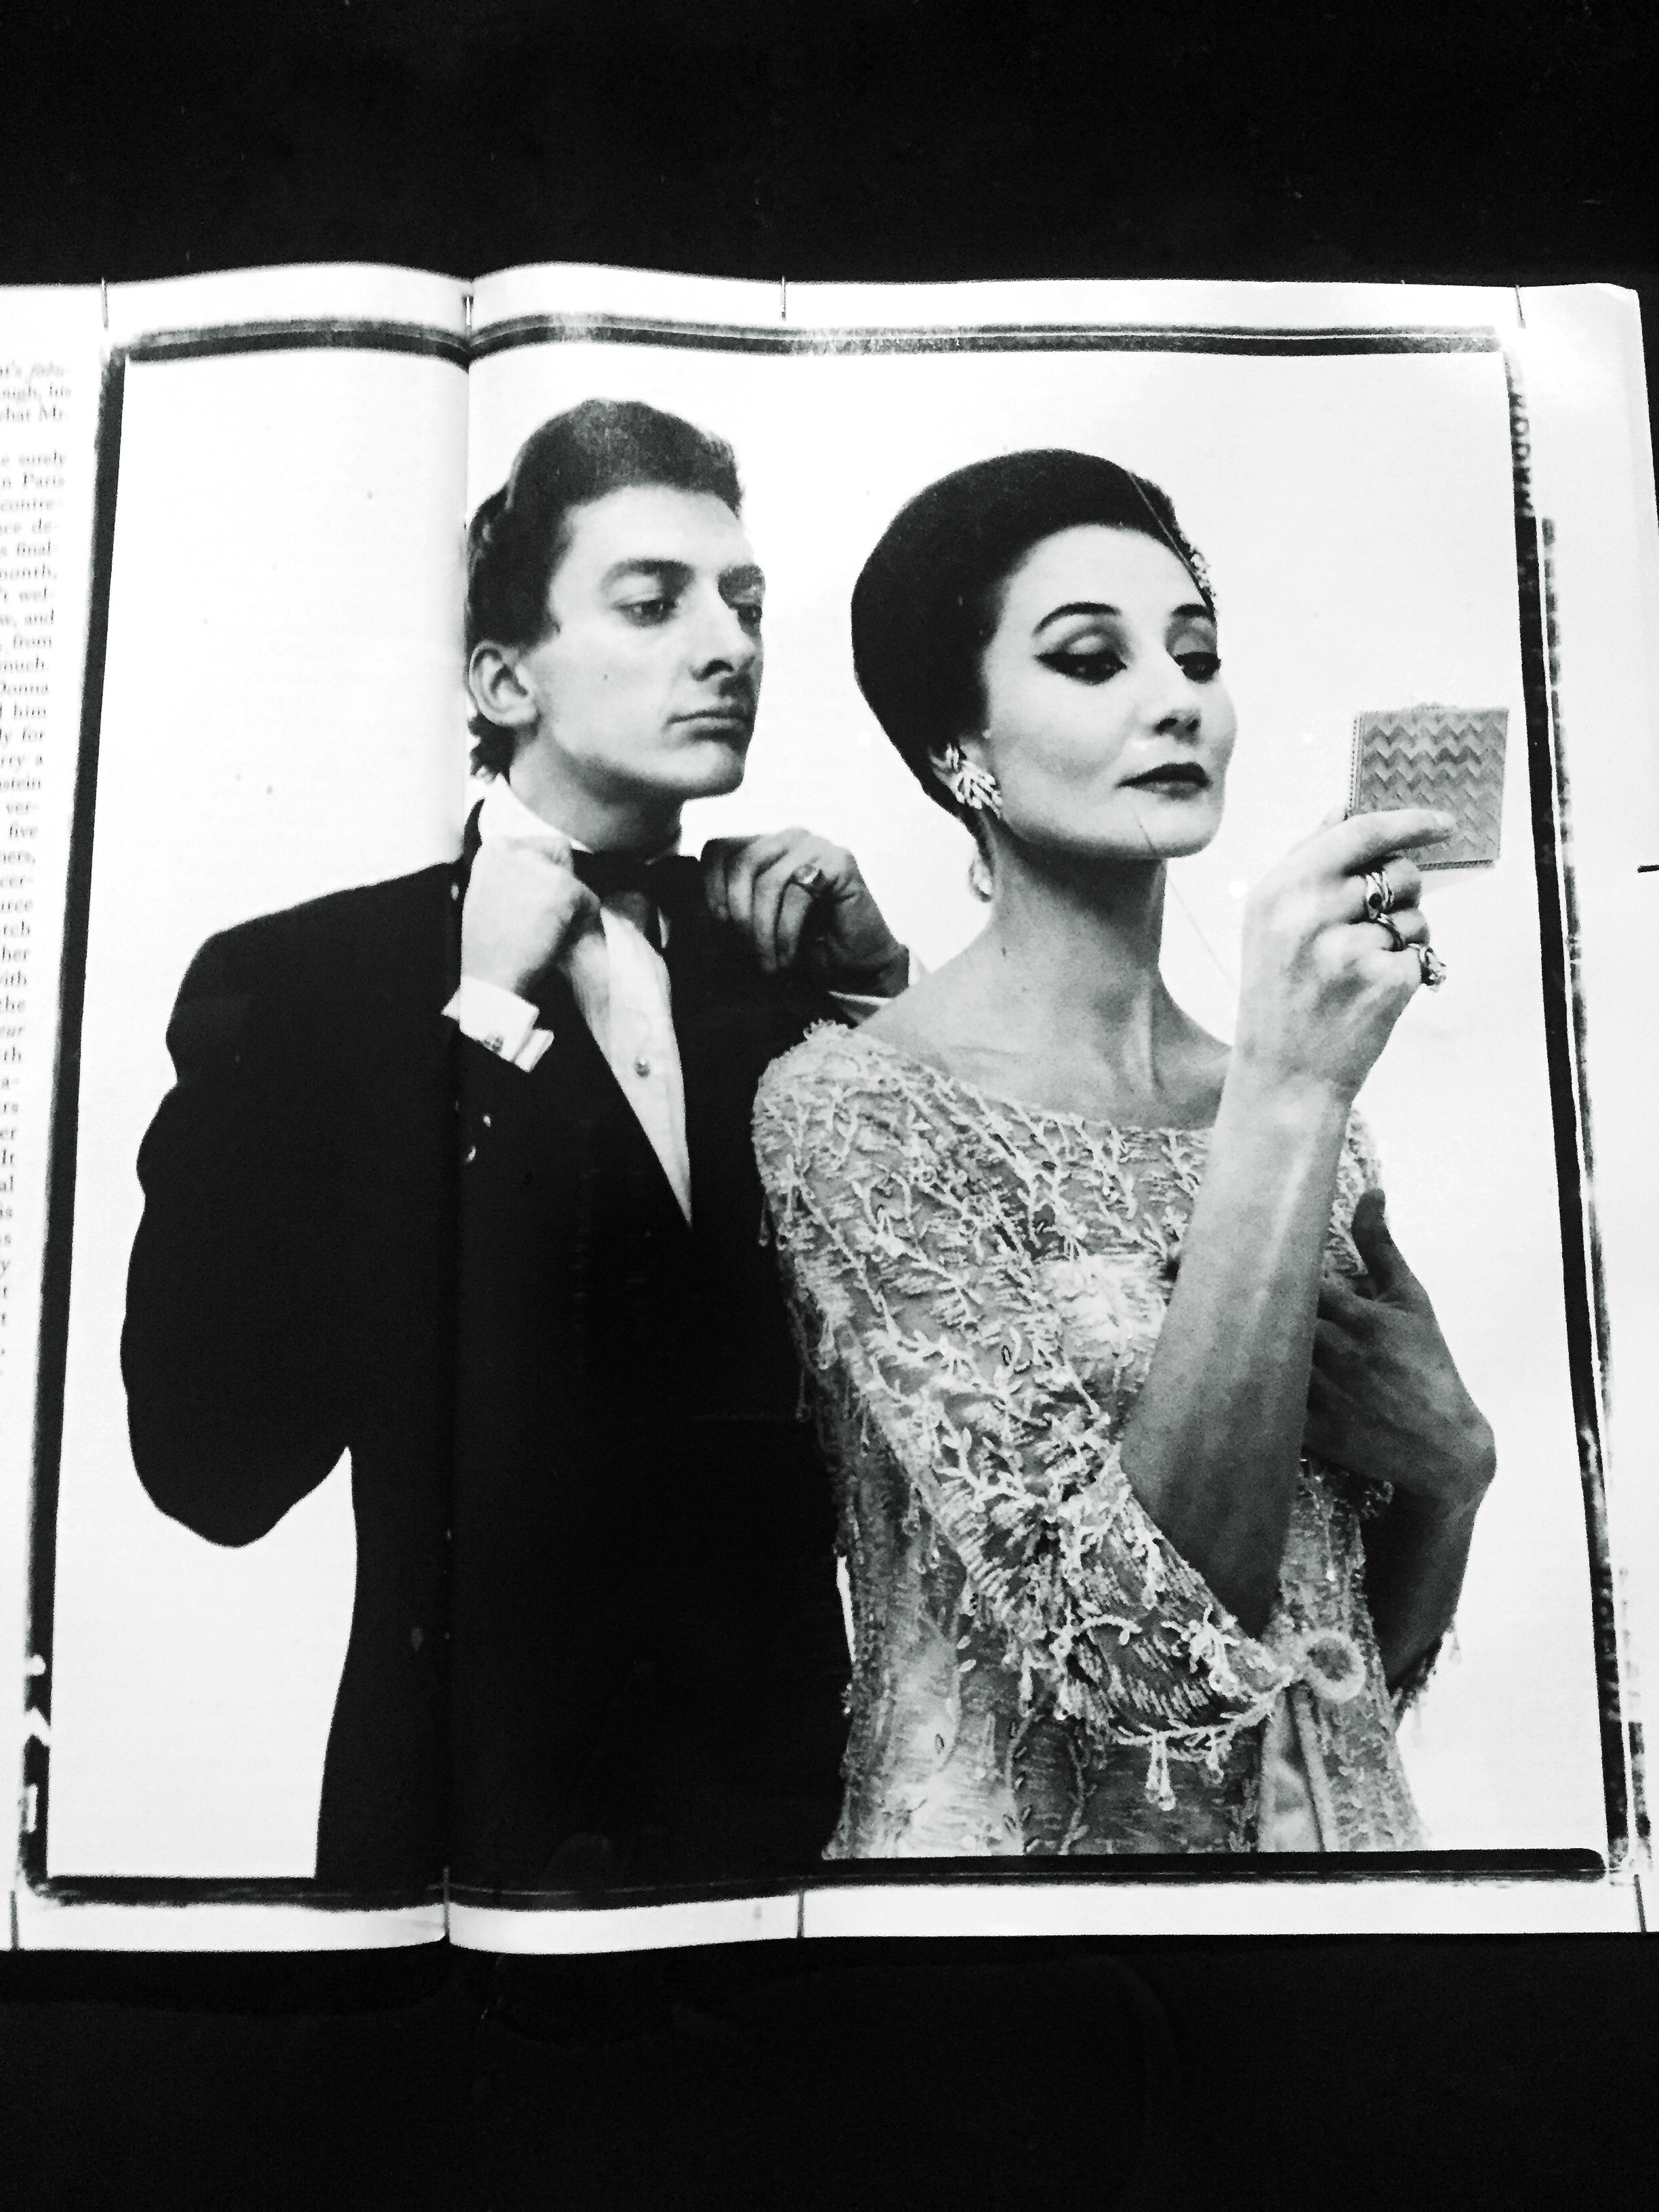 """Narcissism"" photograph of Jacqueline de Ribes by Richard Avedon for The New Yorker magazine."